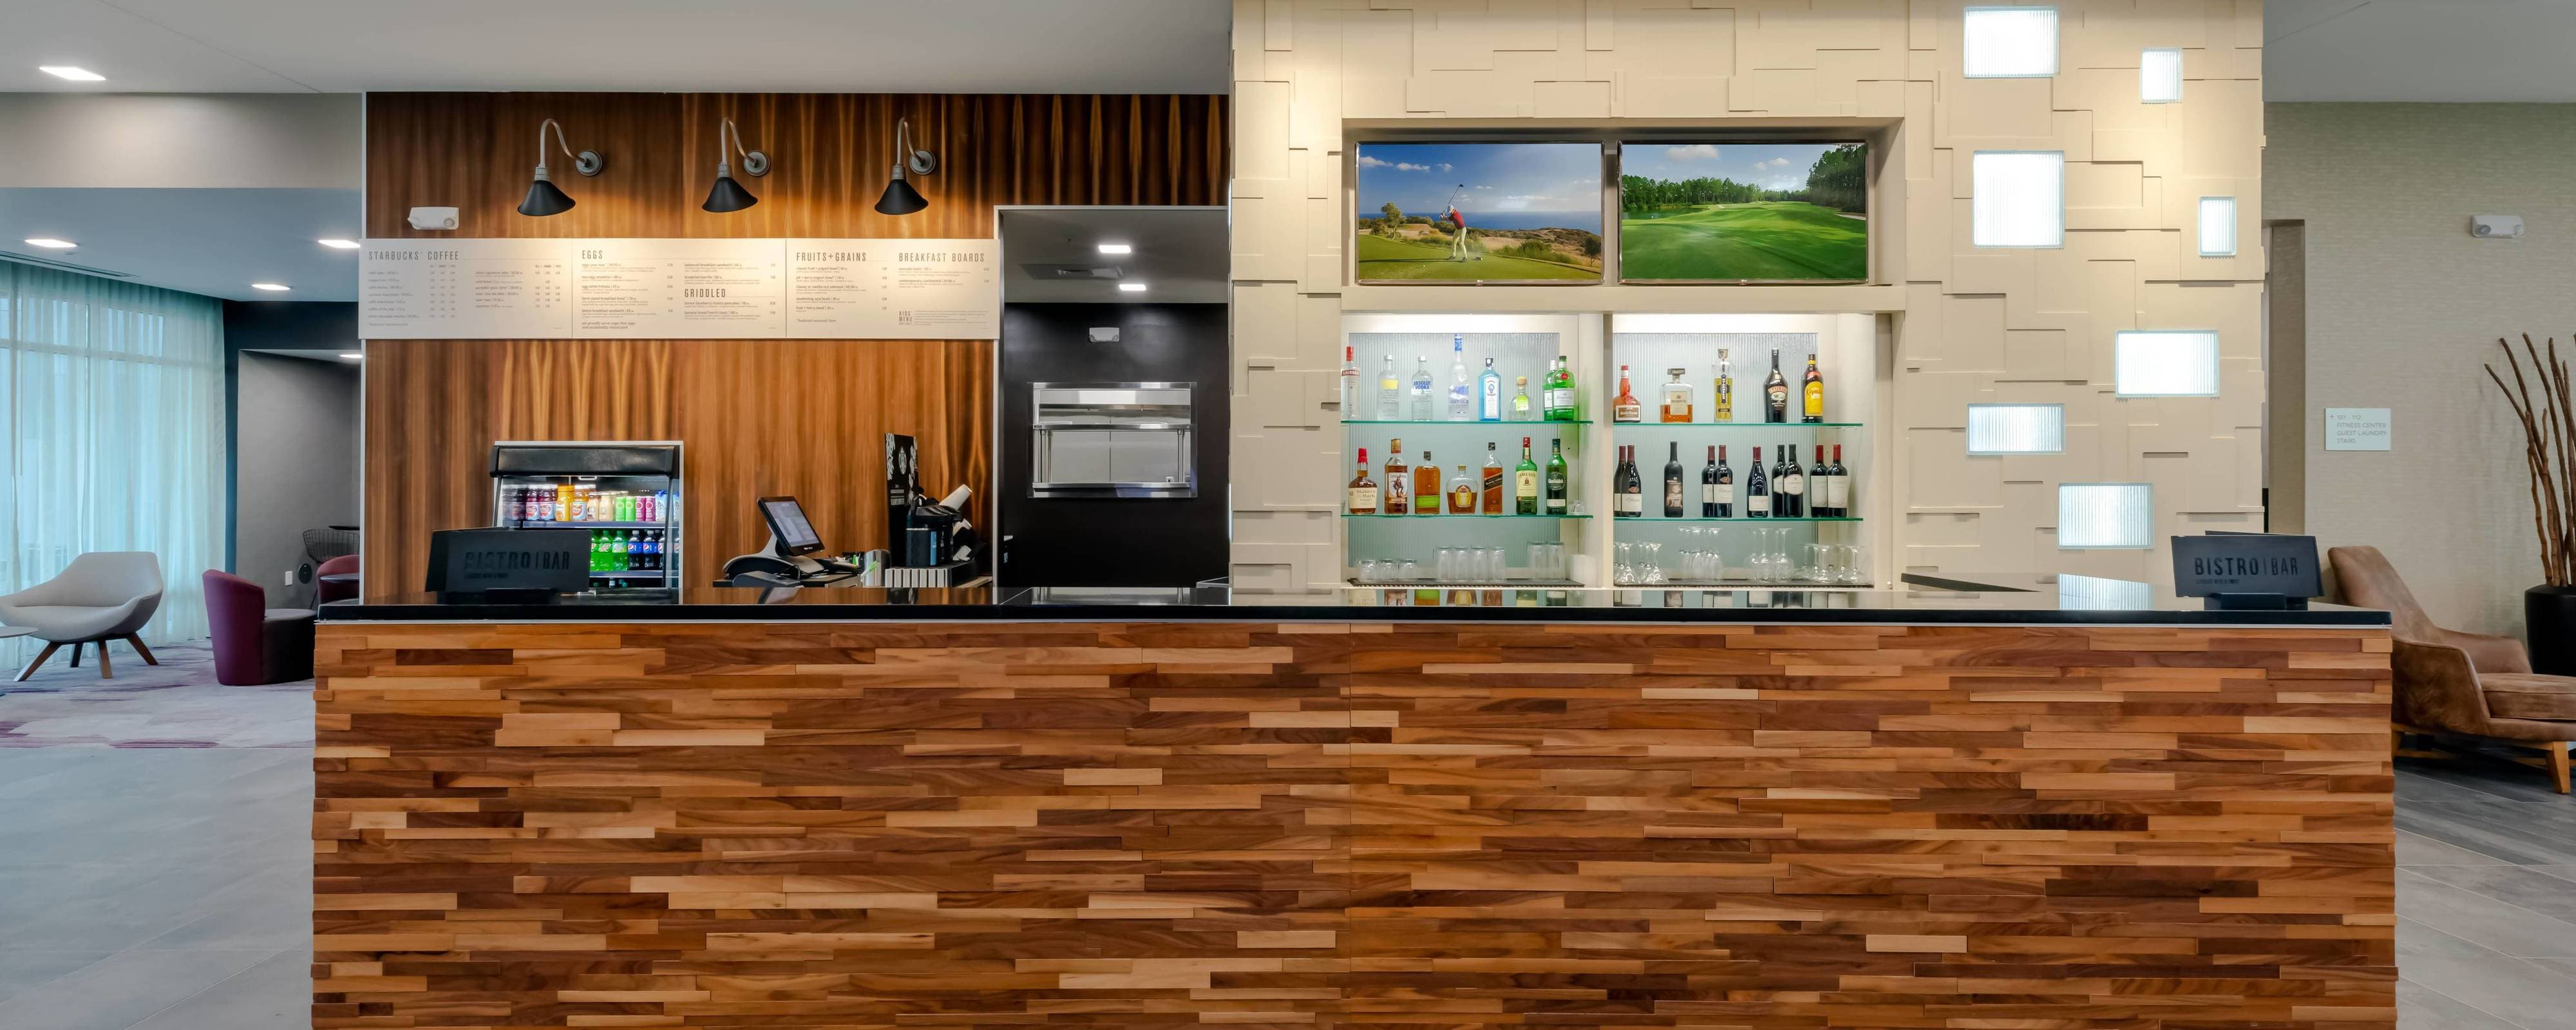 Hotel Dining And Restaurants In Pooler Ga Courtyard